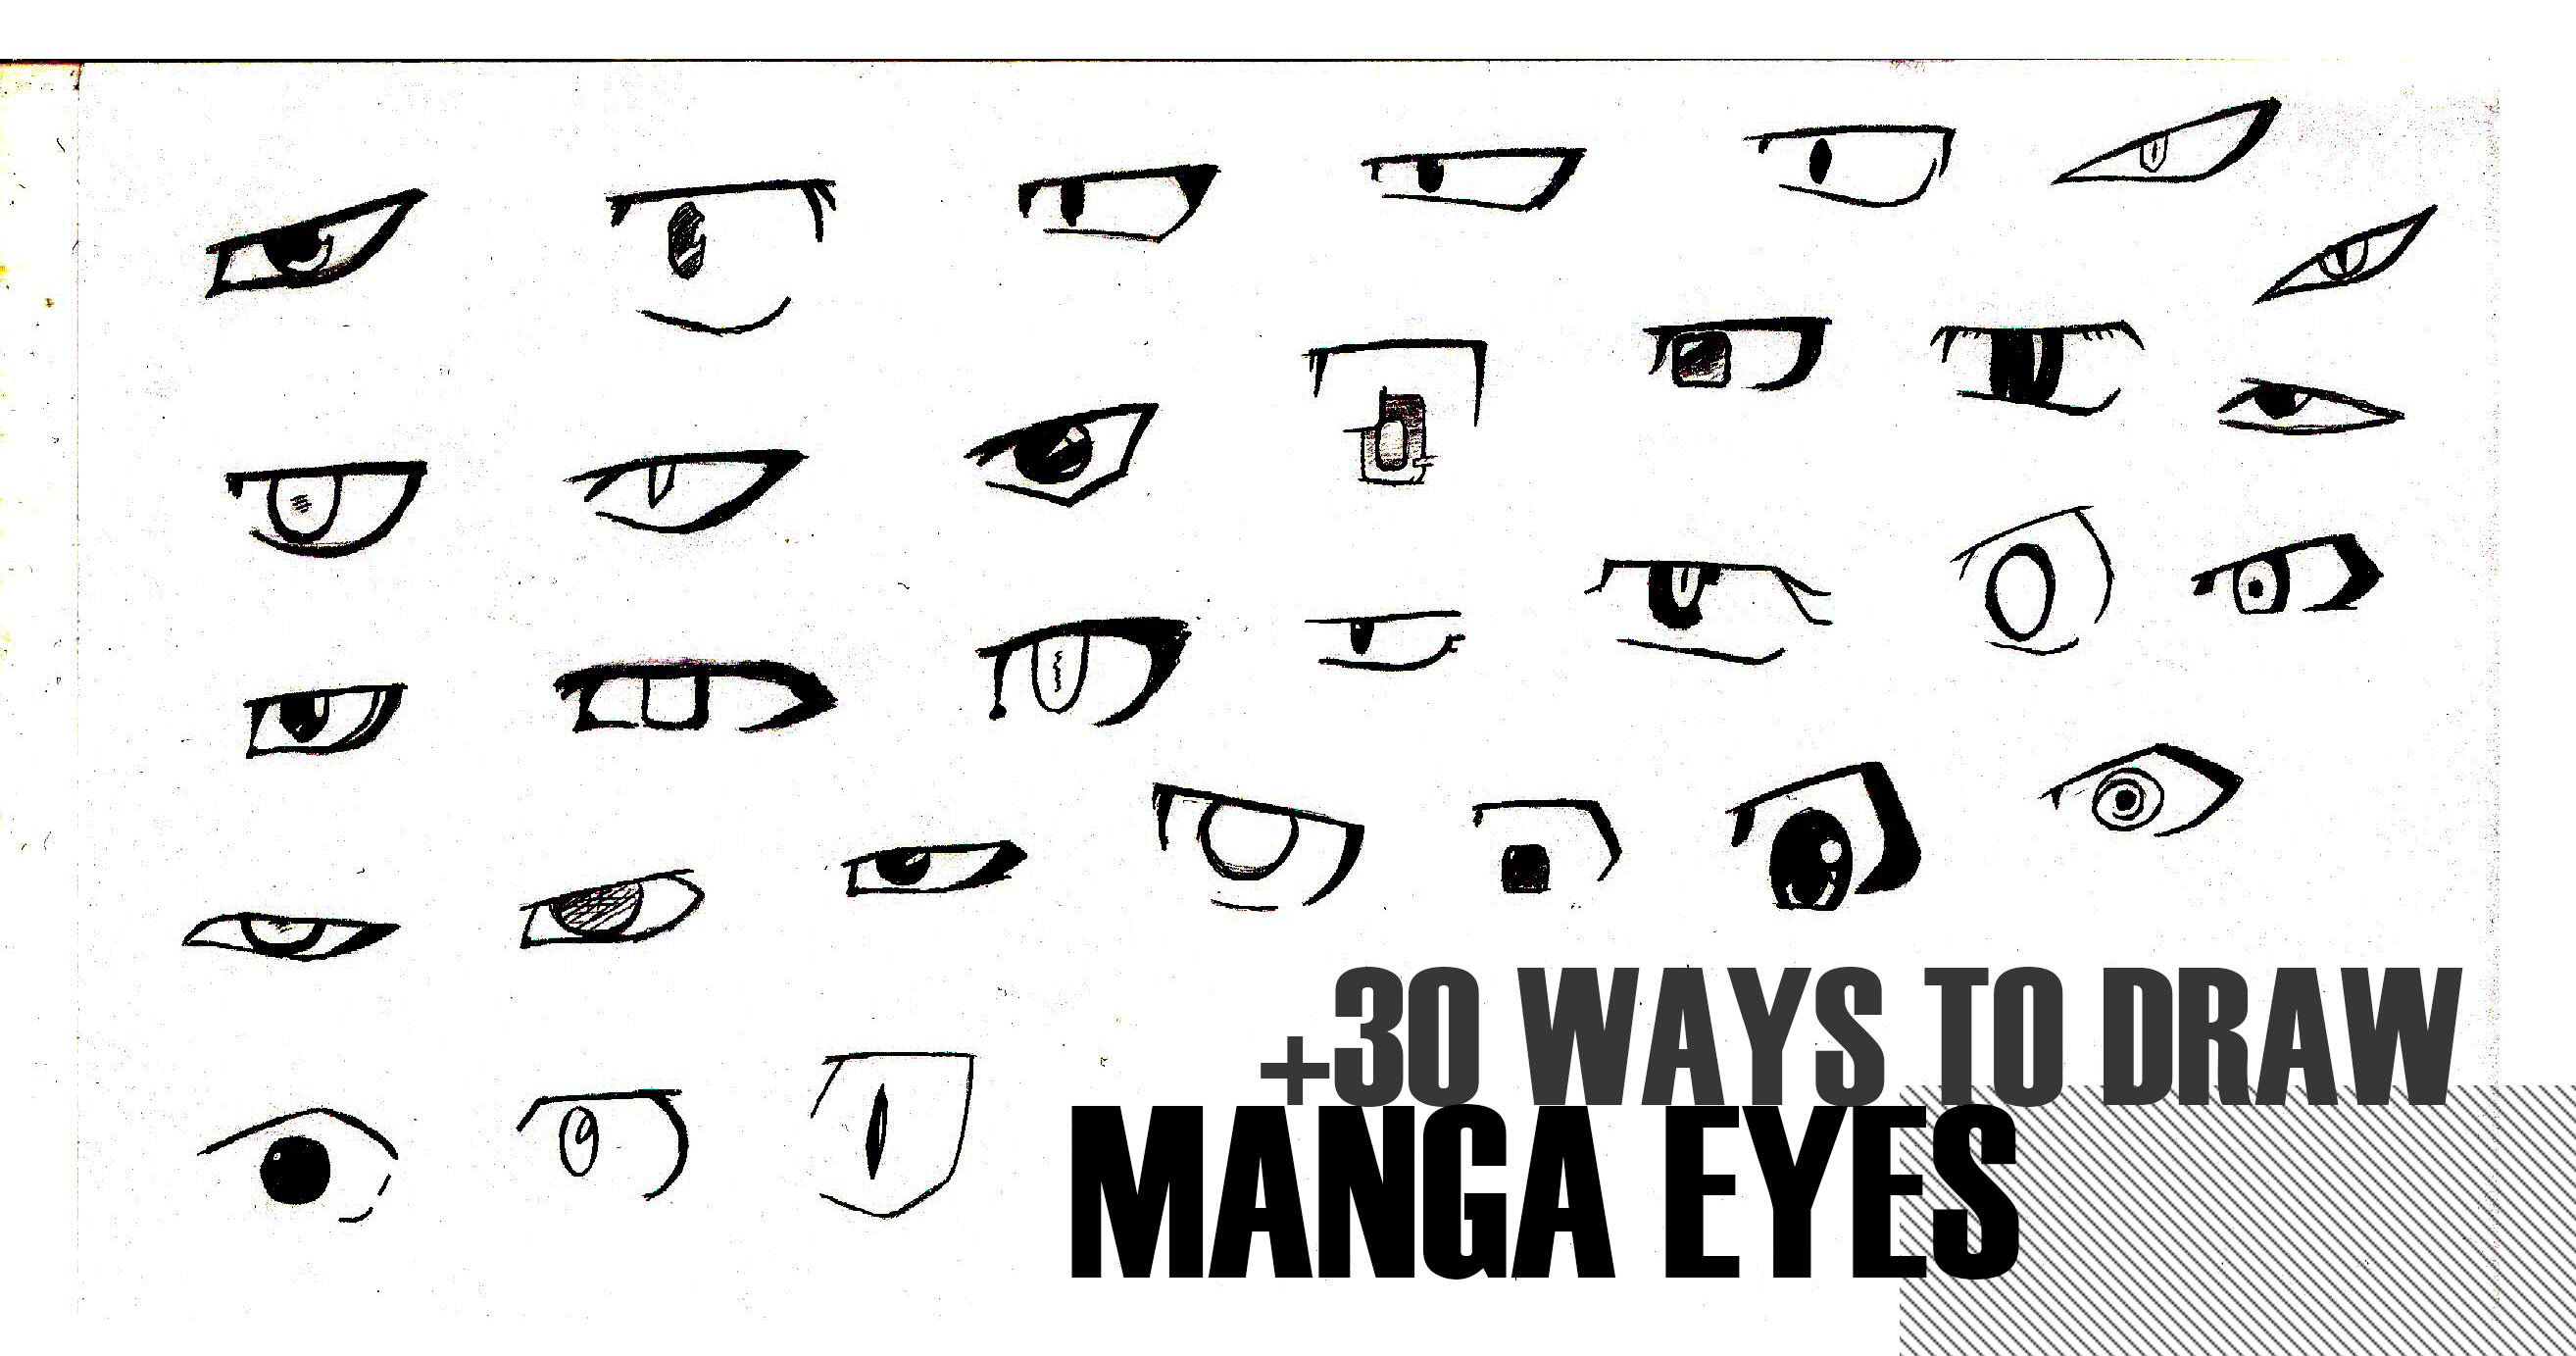 Ways To Draw Manga Eyes By MangakaOfficial